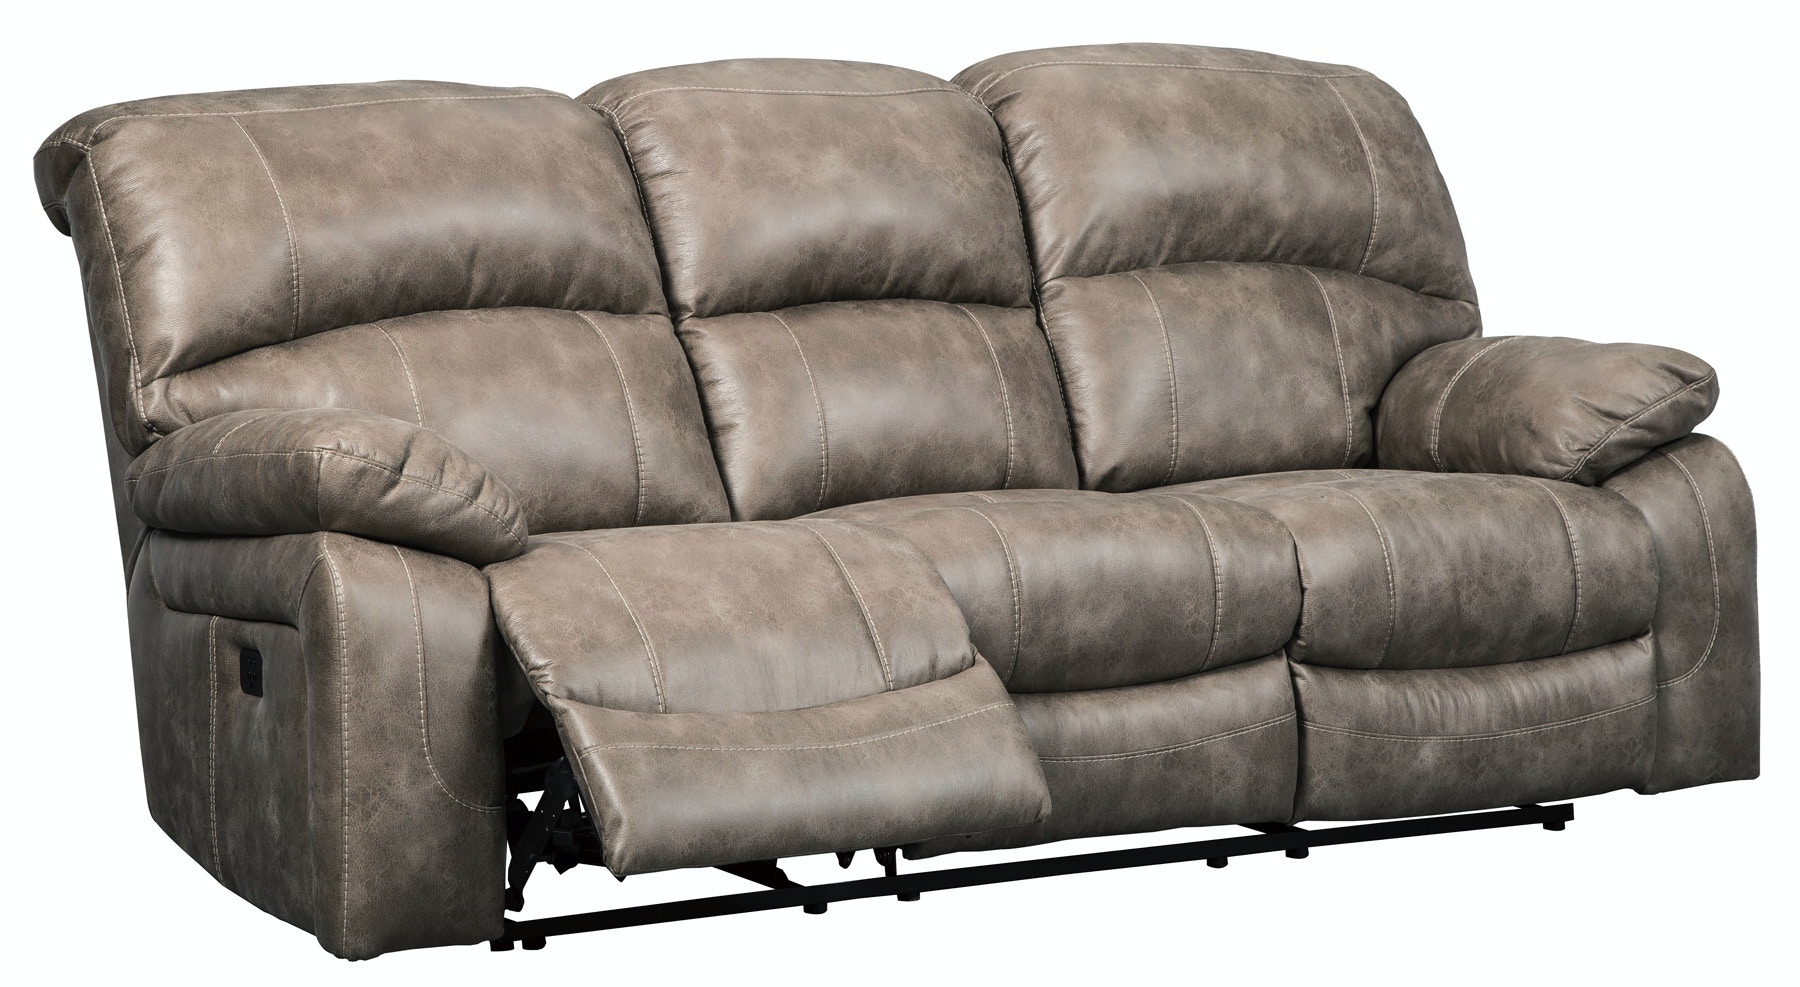 Signature Design By Ashley Dunwell Power Reclining Sofa 057080